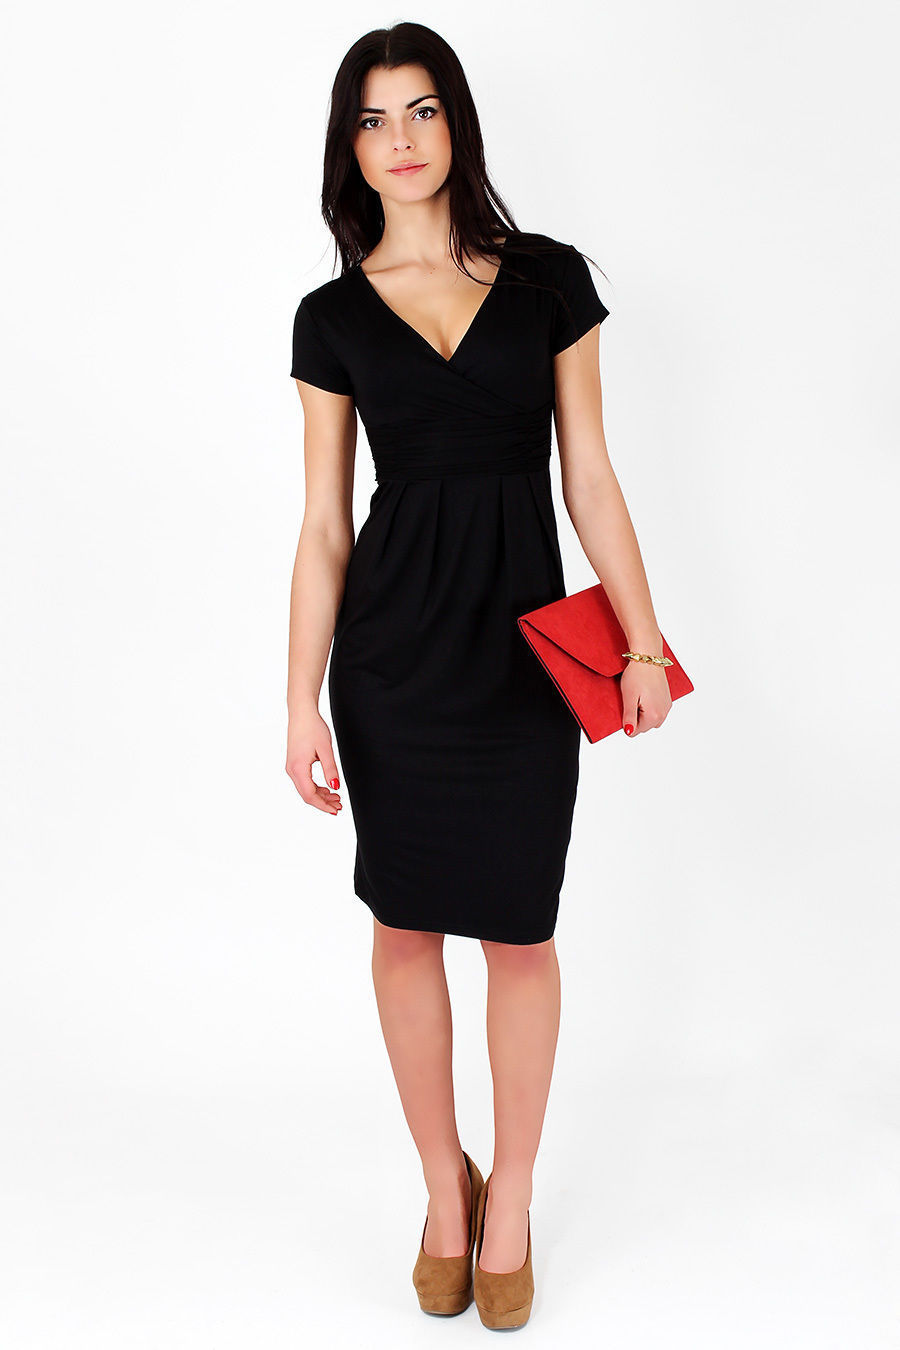 Find this Pin and more on Plus Size Career Wear by CurvyDivas Plus Size Style Blog | Plus Size Dresses | Plus Size Swimwear. classy work outfits - into wearing more dresses. Shop our collection of women's dresses for the latest styles. From party dresses to evening dresses, you'll .